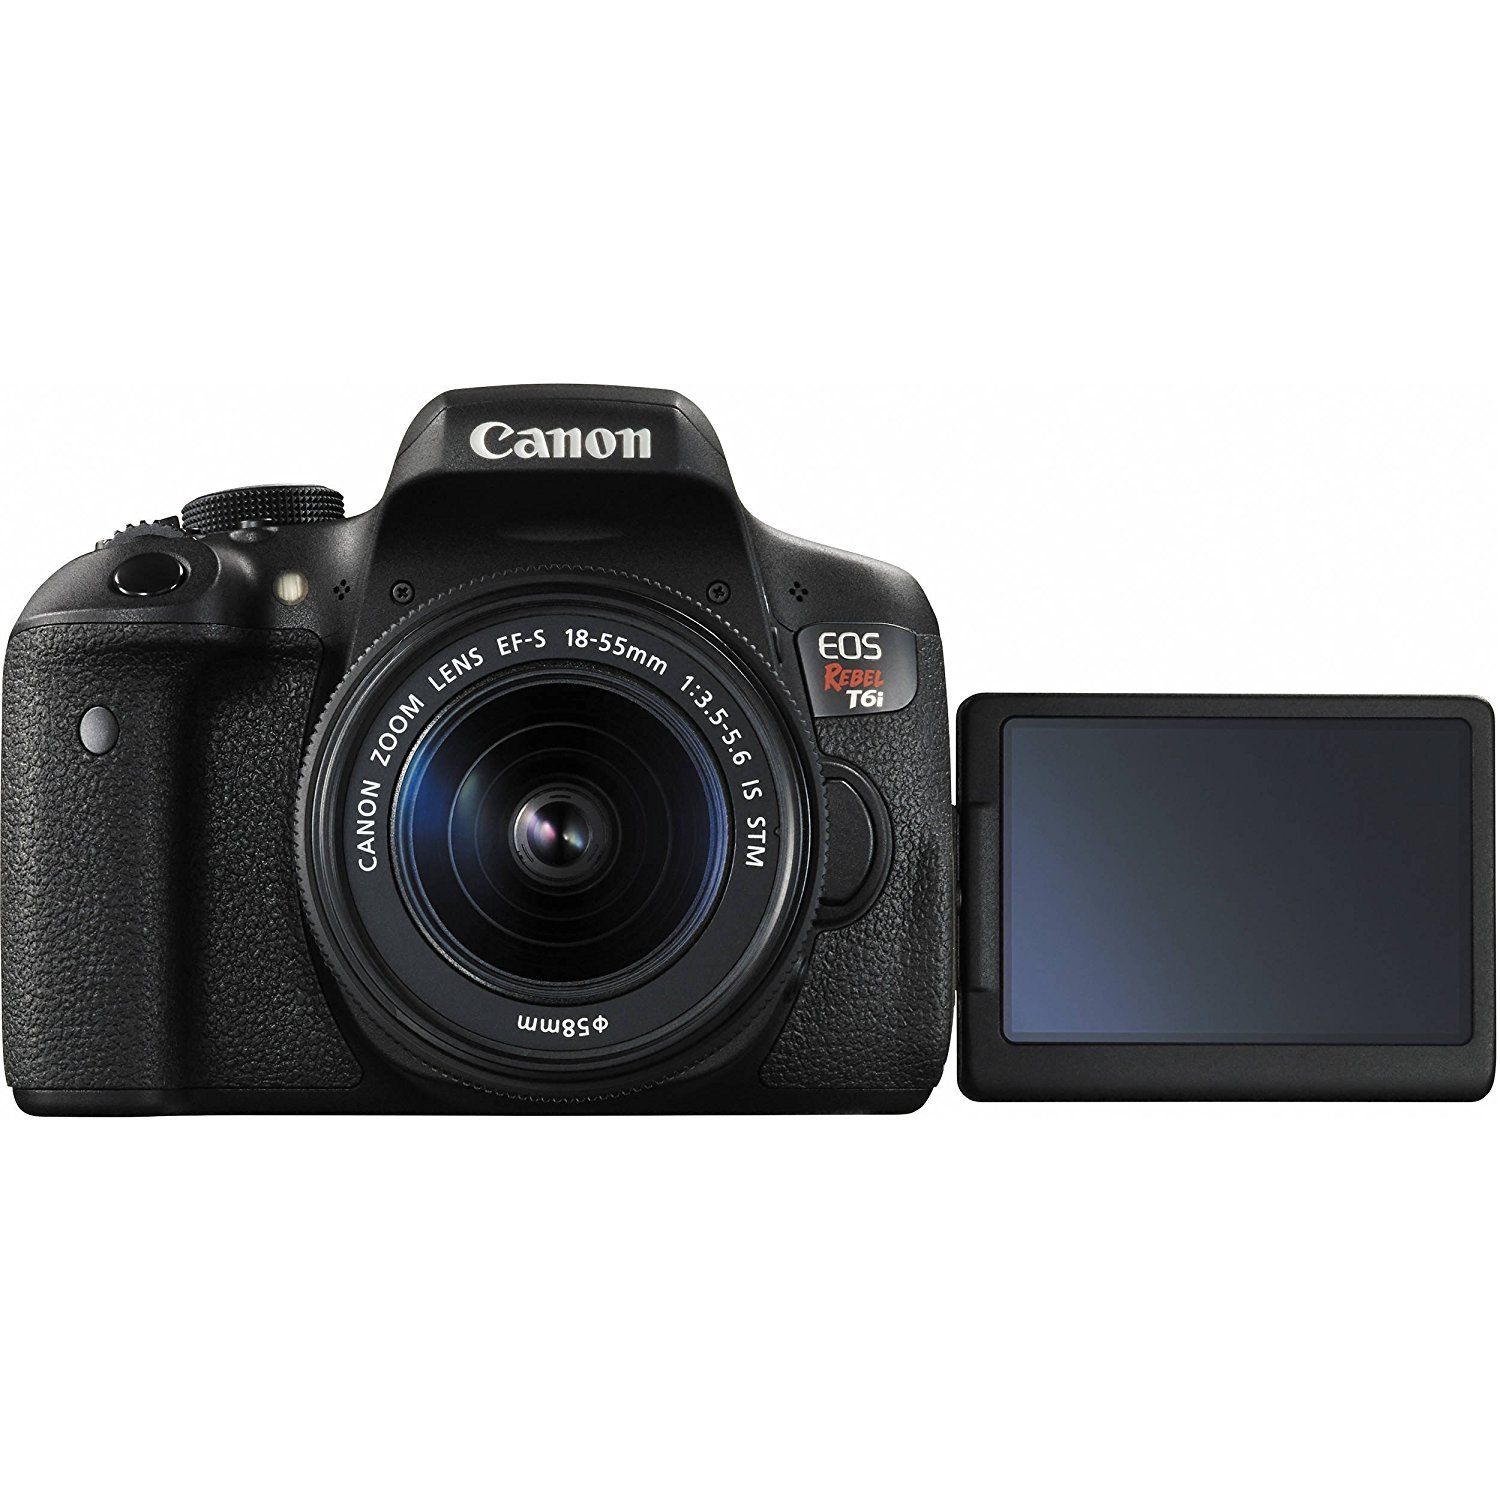 Canon 750D LCD